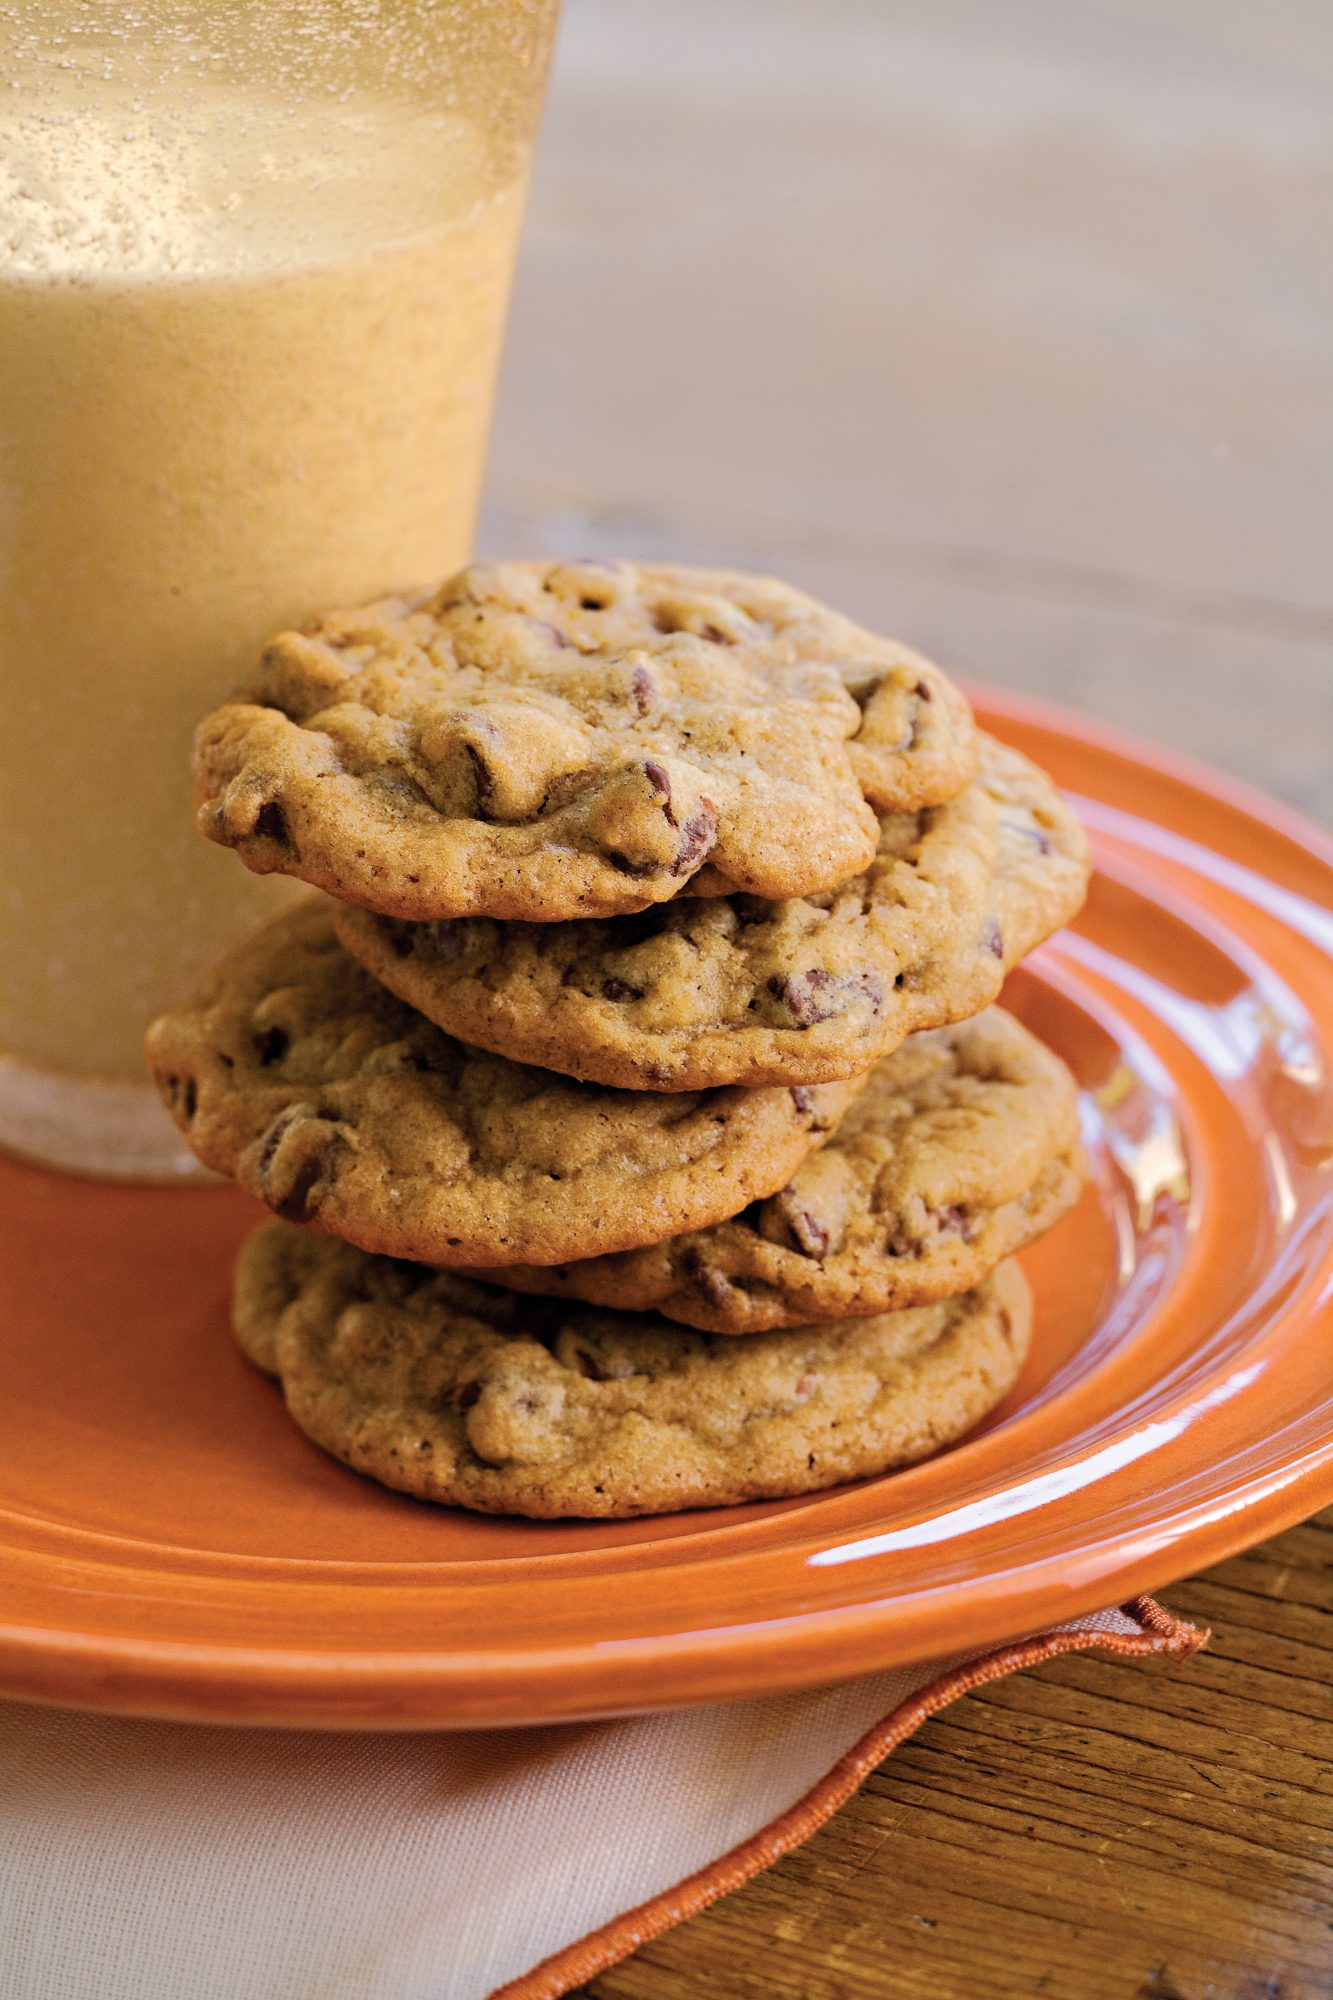 Best Chocolate Chip Cookie Recipe - Southern Living